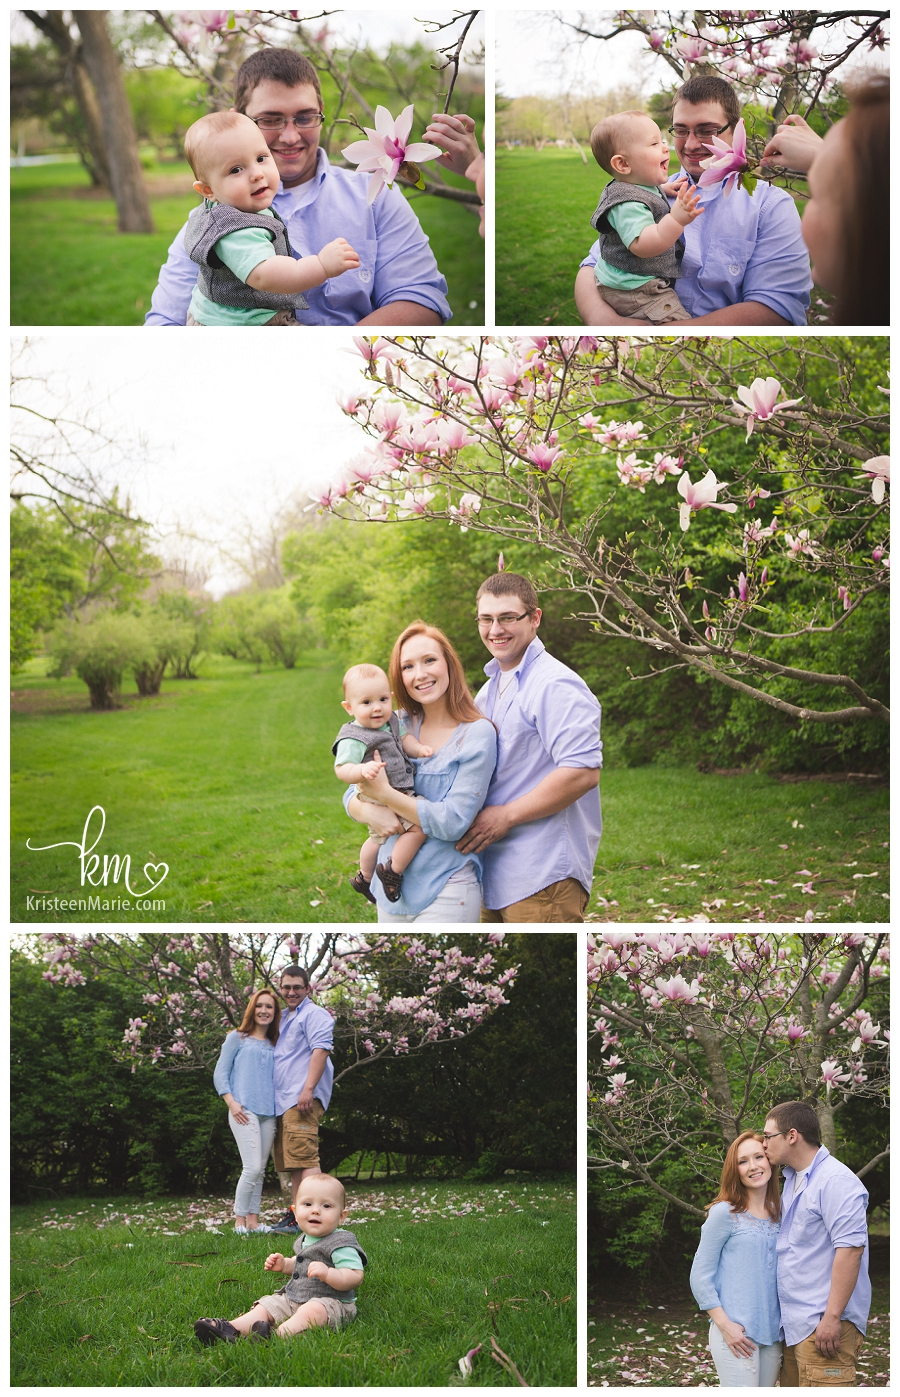 Spring time outdoor pictures in Indianapolis